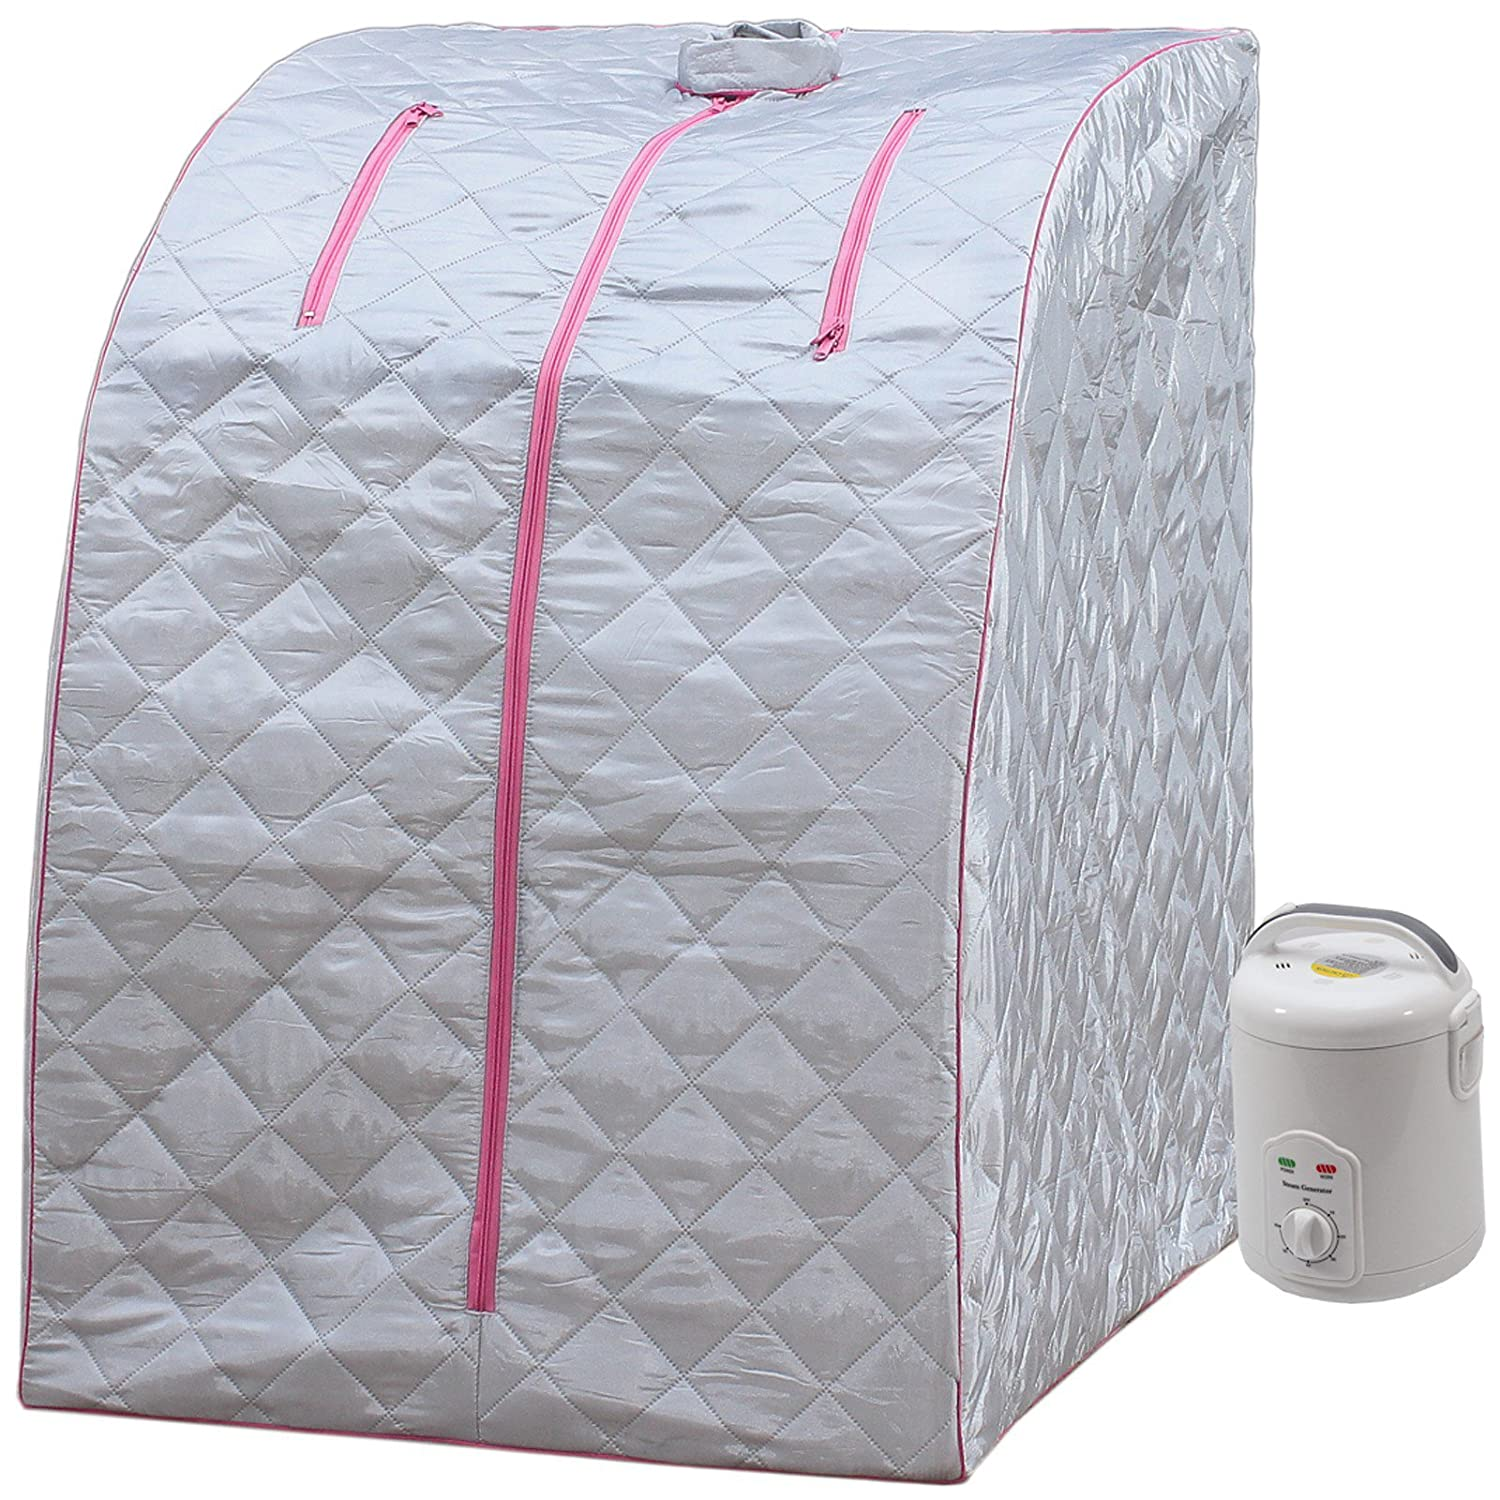 Lightweight Personal Steam Sauna by Durasage for Relaxation at Home, 60 Min Timer - Pink Durherm SS03_Pink